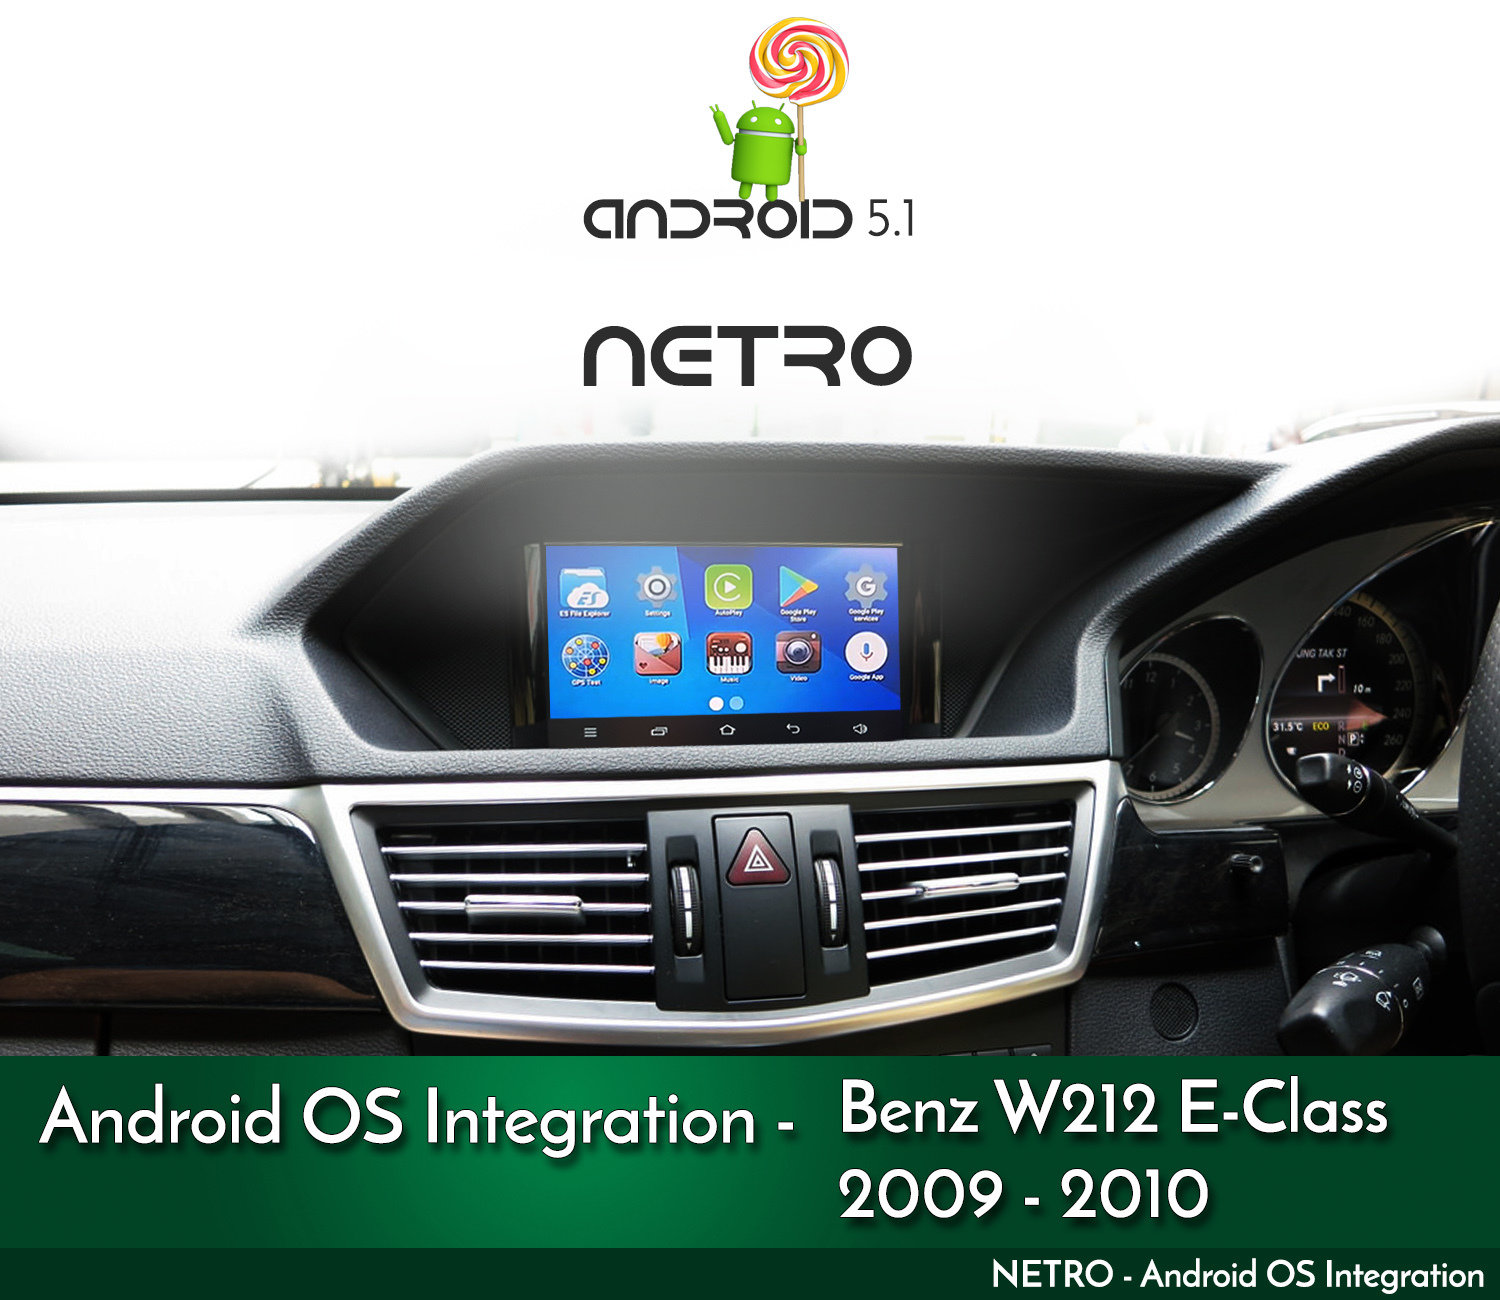 2009 - 2010 - W212 / C207 Mercdeses Benz E-Class NTG4 Audio 20 / COMAND  Integrated Android OS Kit